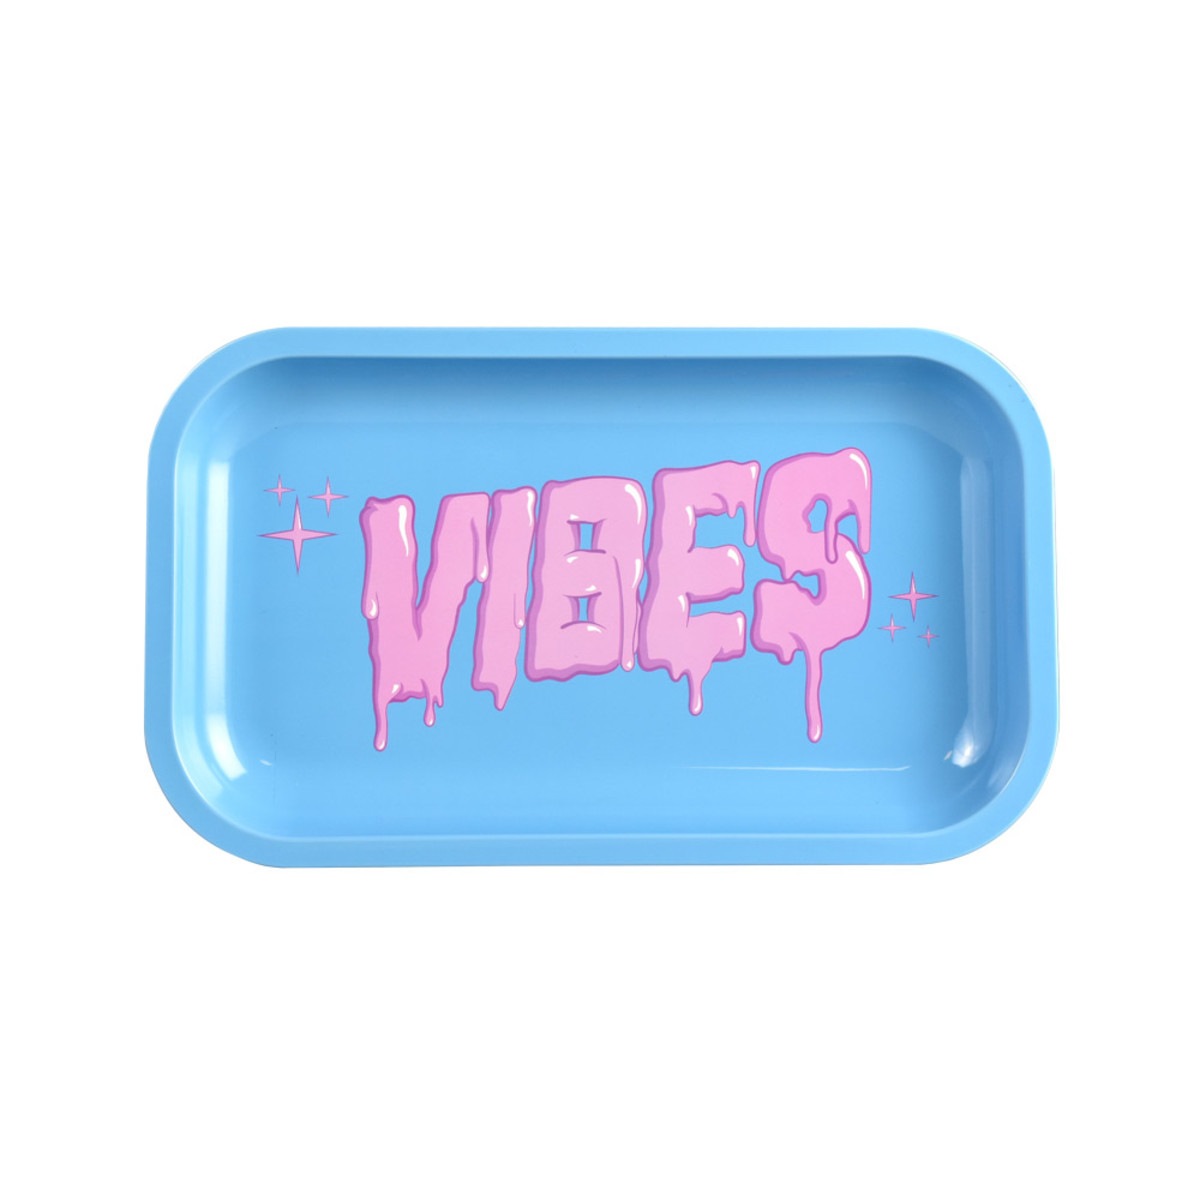 Vibes Metal Rolling Tray Bubblegum Drip Logo Medium